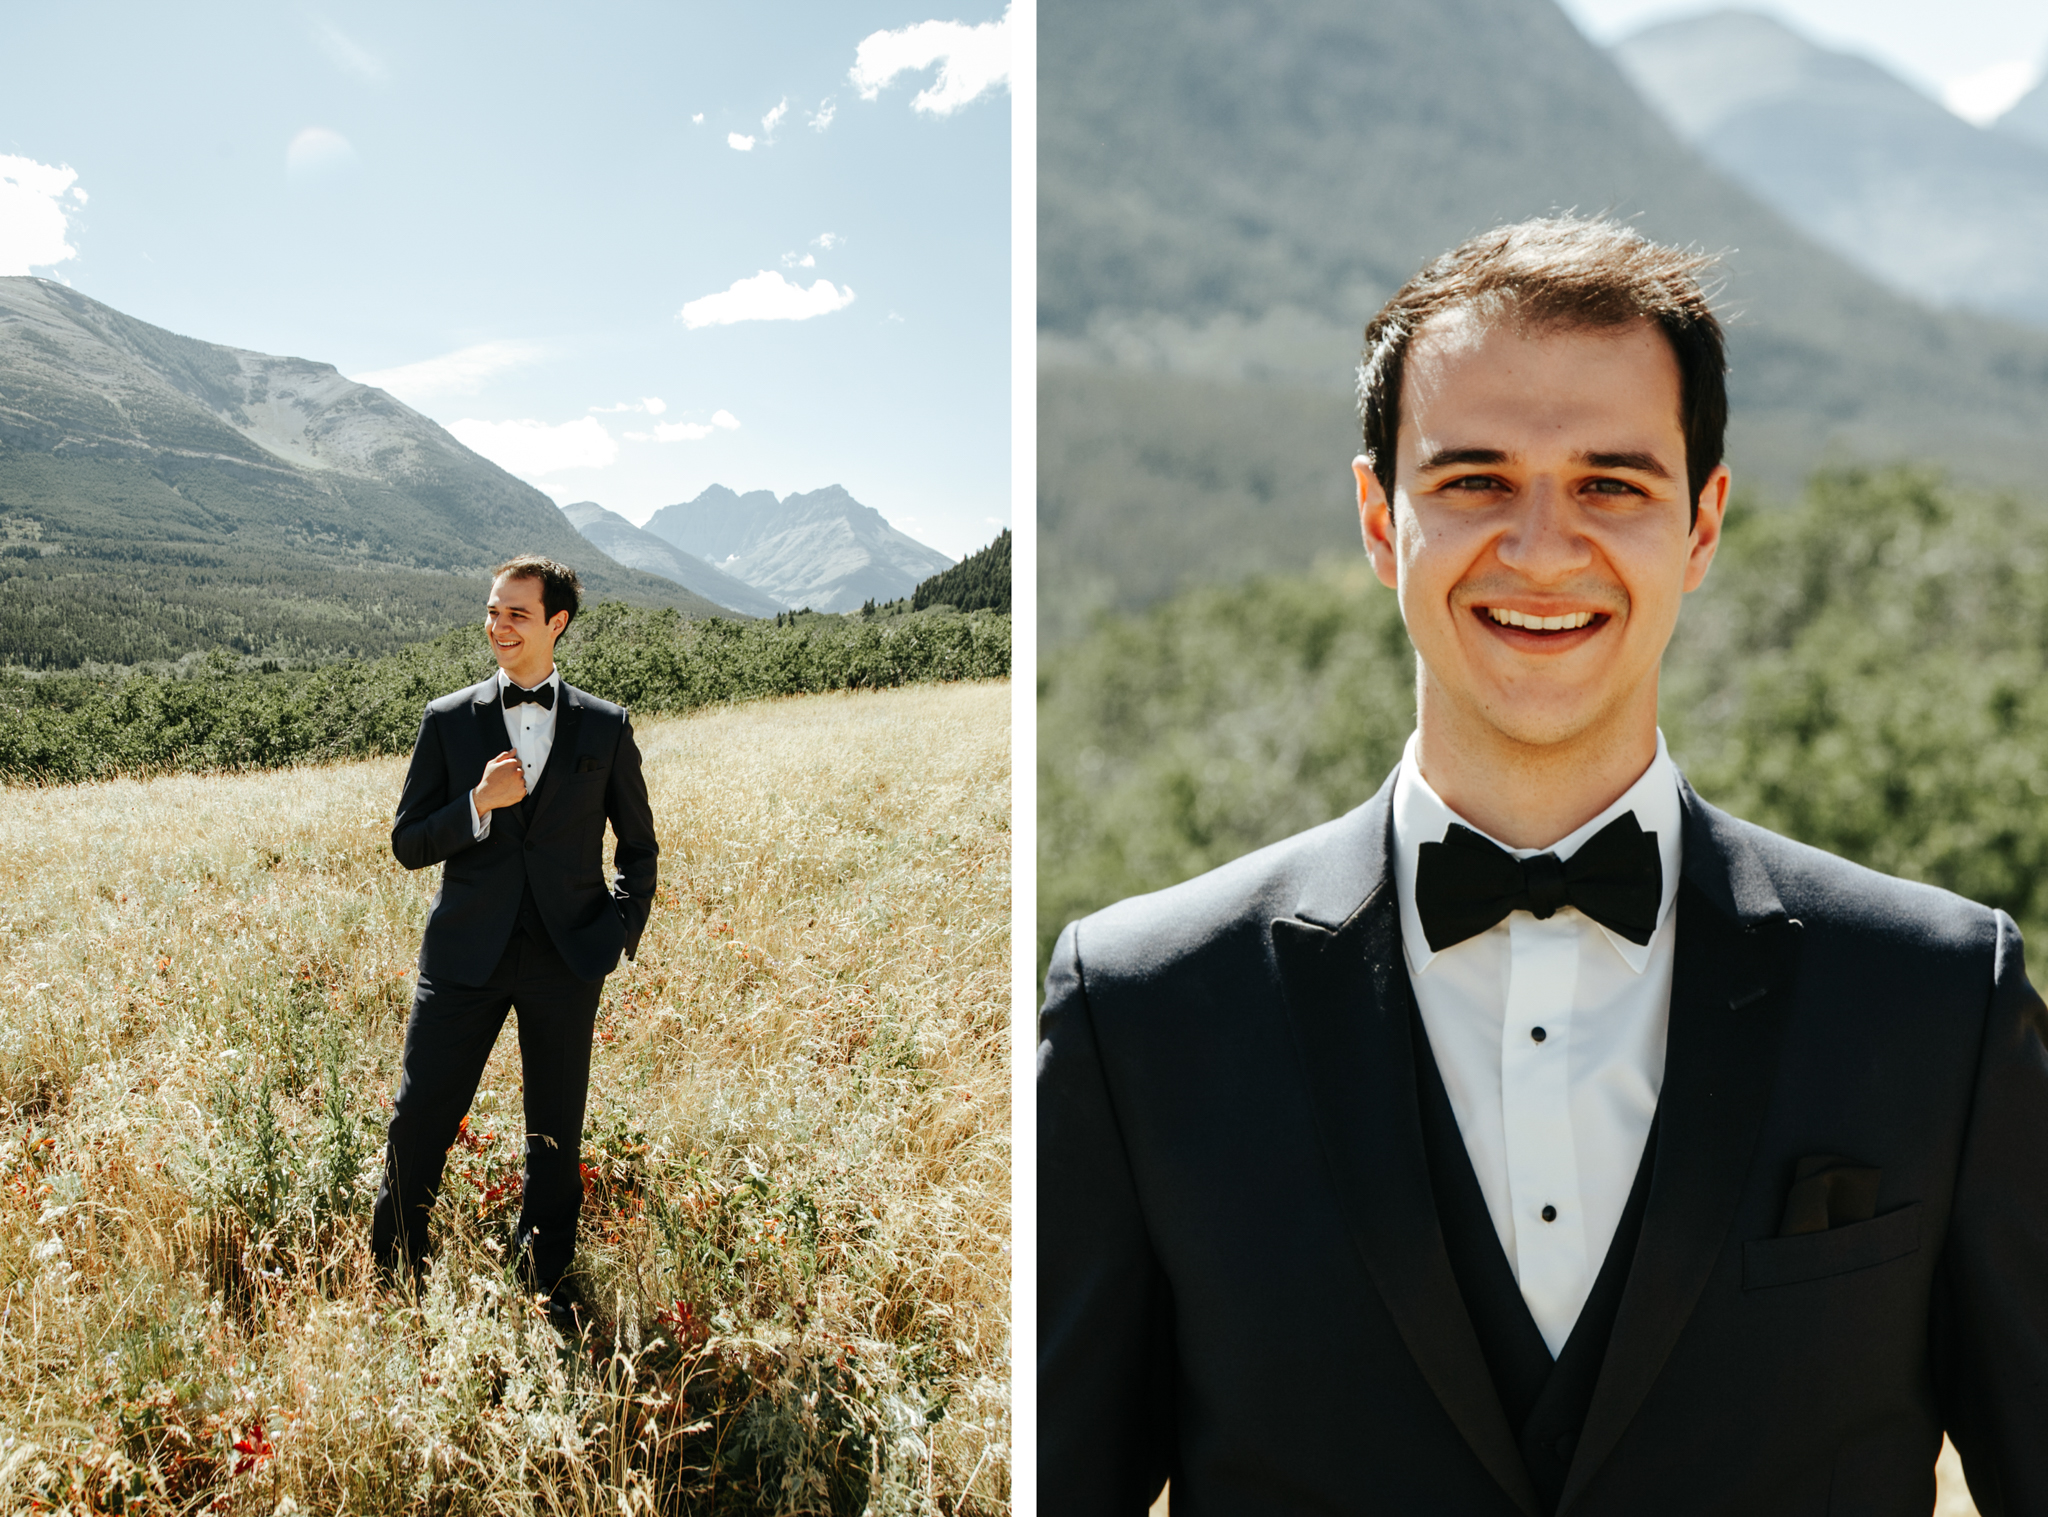 waterton-wedding-photographer-love-and-be-loved-photography-lethbridge-calgary-adam-jodie-image-picture-photo-114.jpg